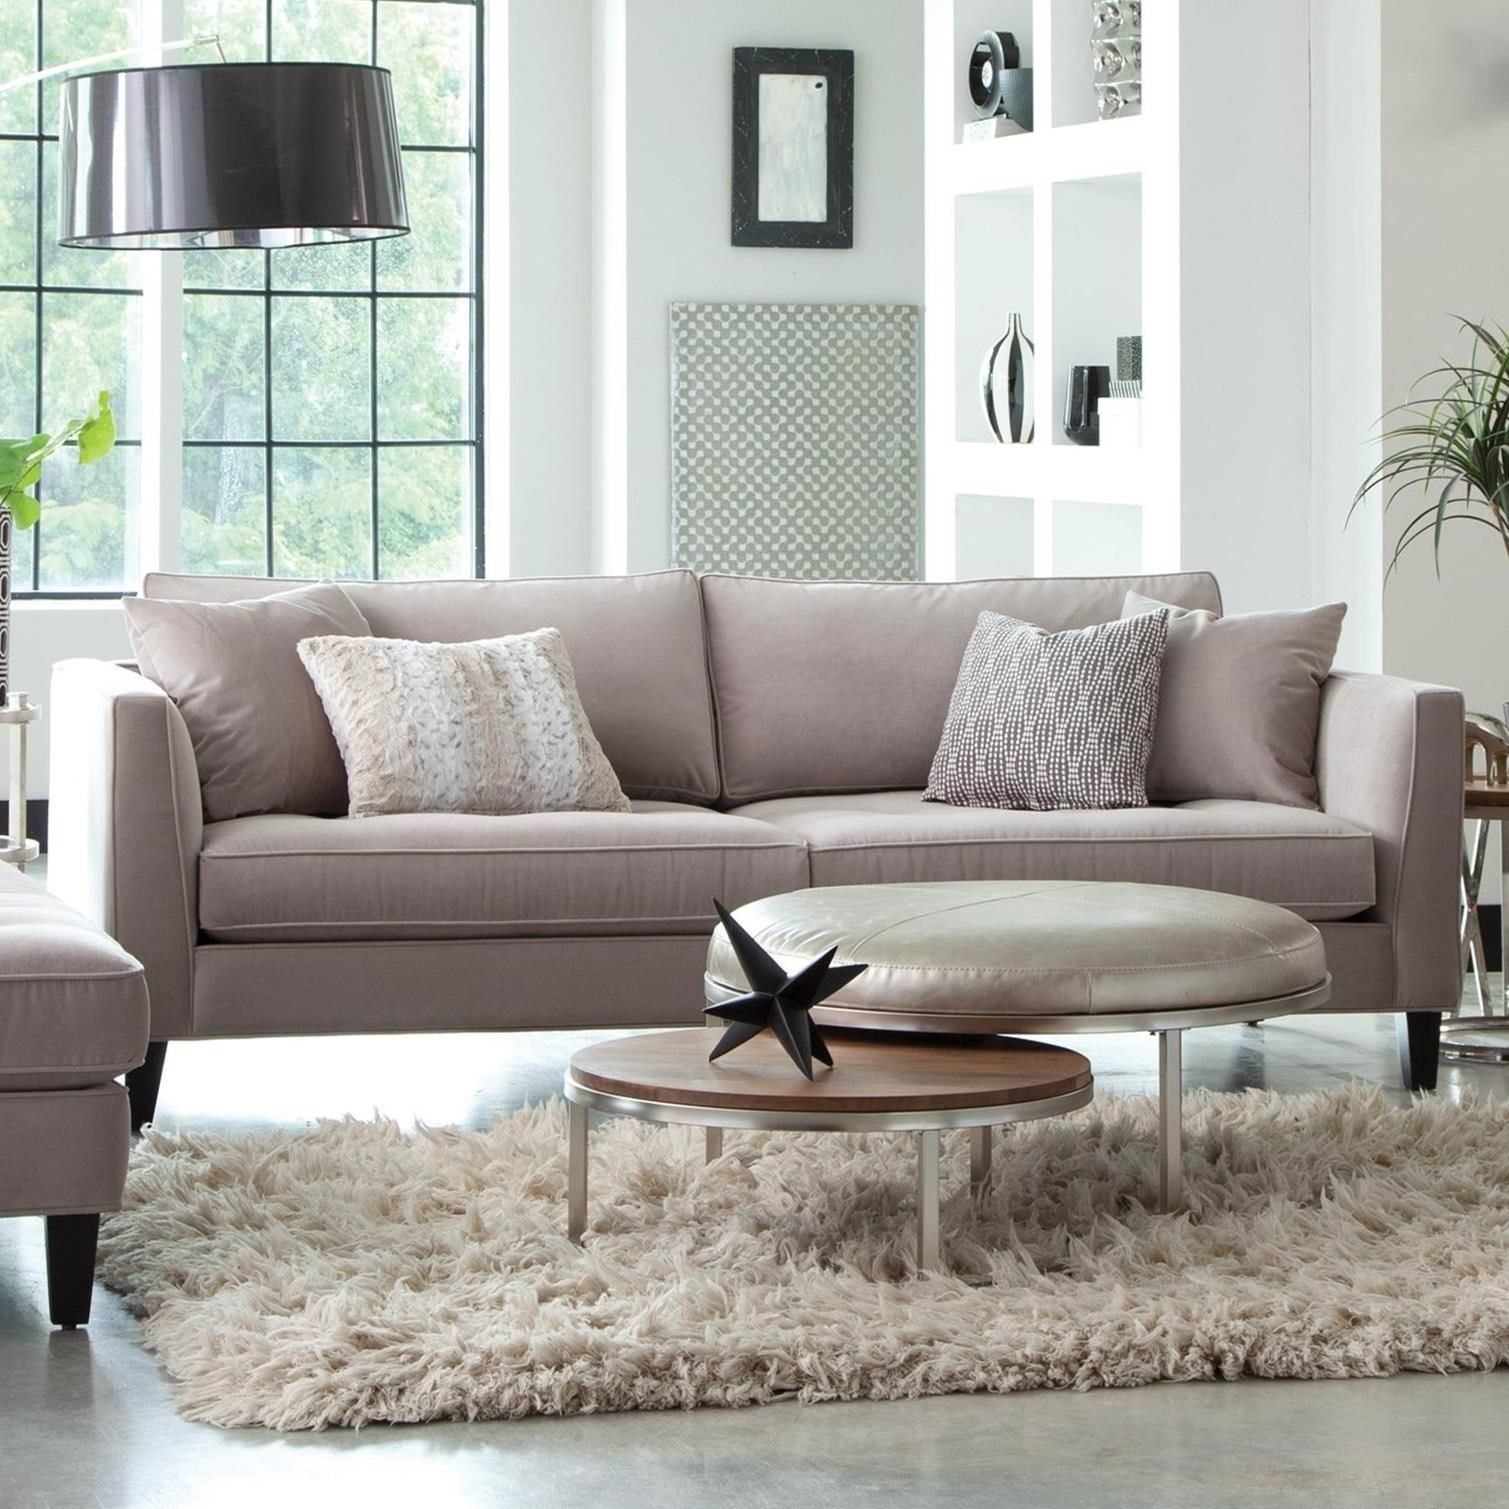 Charmant Jonathan Louis CalistaEstate Sofa ...